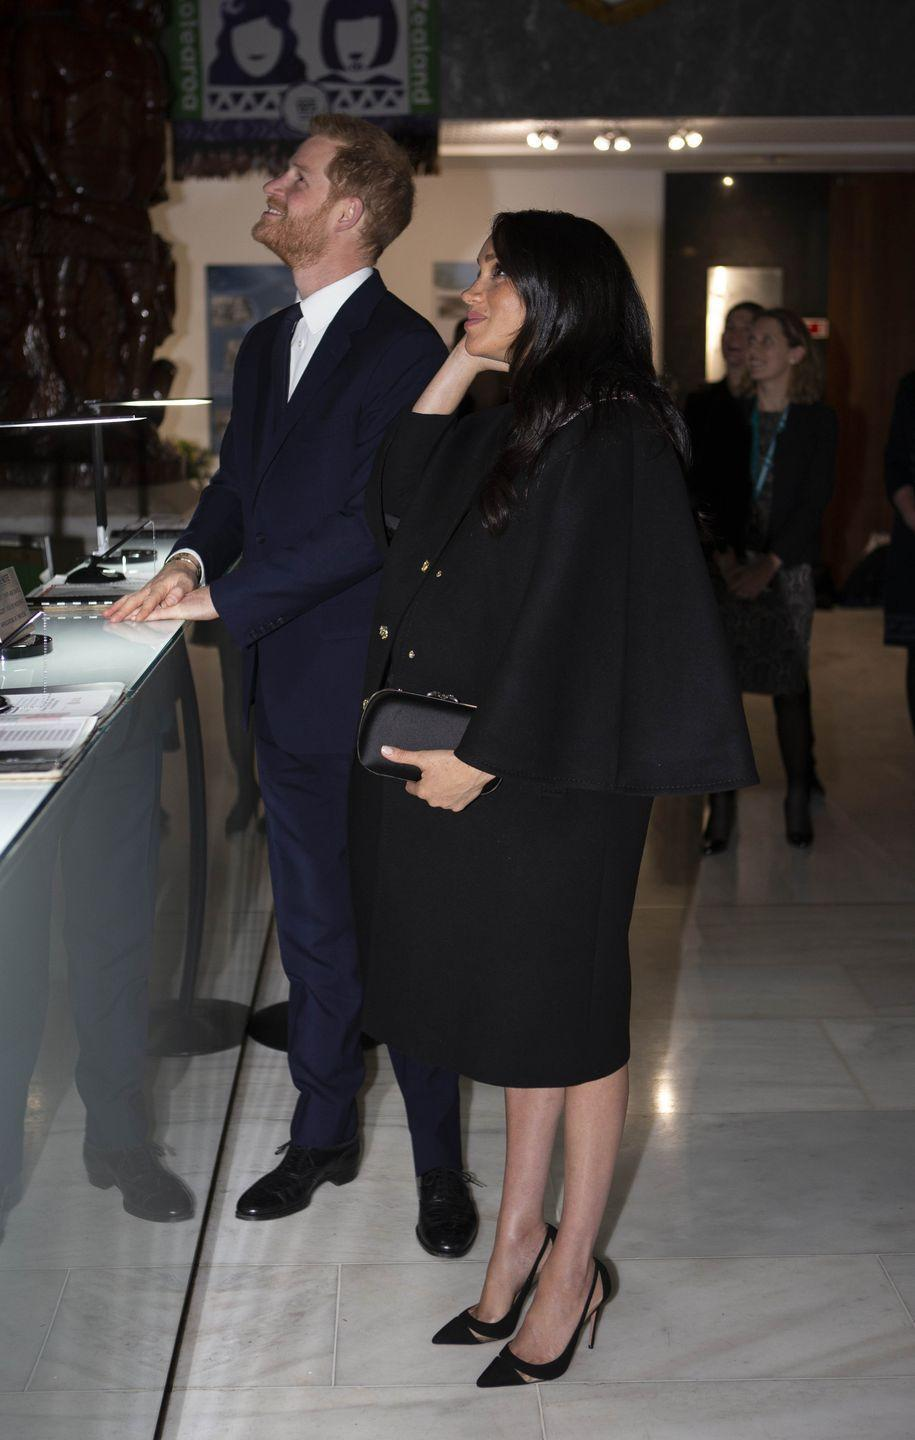 <p>Following the awful terror attack on mosques in New Zealand, Meghan Markle made her last appearance pre-Archie with husband Prince Harry. The pair visited London's New Zealand House to sign a book of condolence on behalf of The Royal Family, and although she was dressed in a black cape, just seven weeks before giving birth, Meghan looks very heavily pregnant.</p>